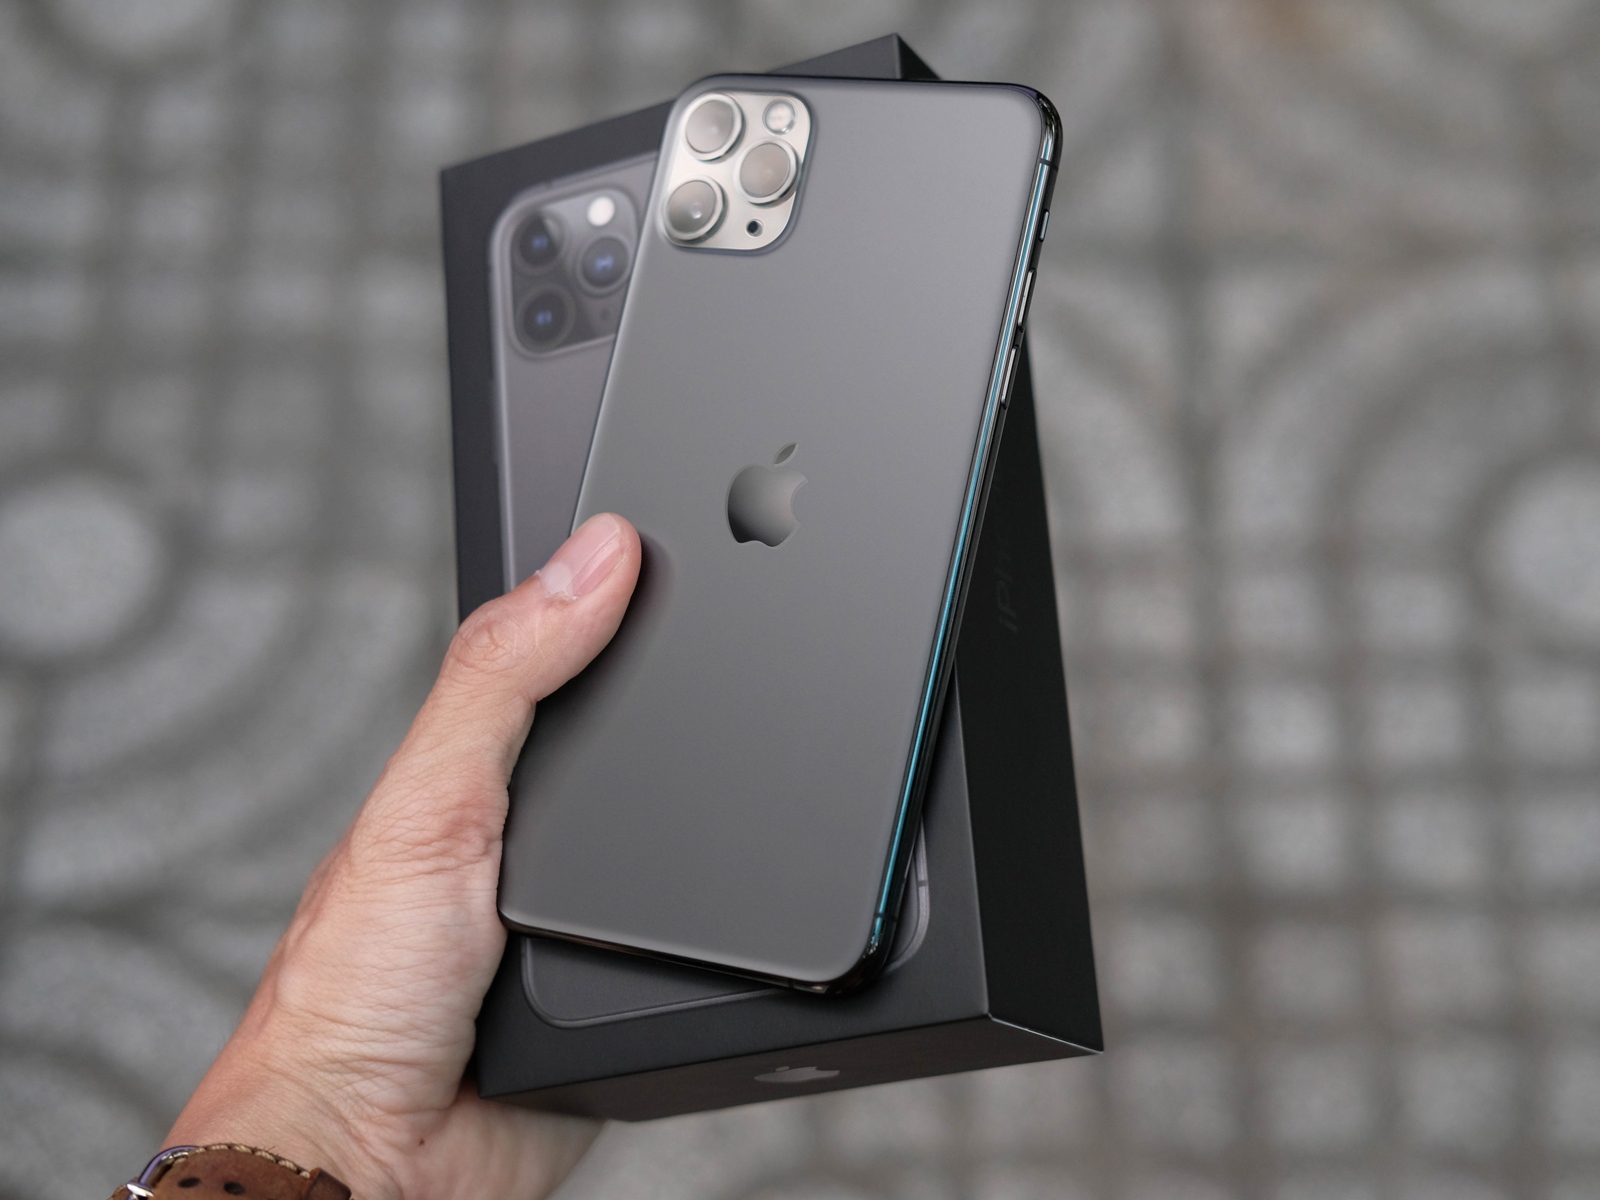 A person holding an iPhone 11 Pro Max ad its box